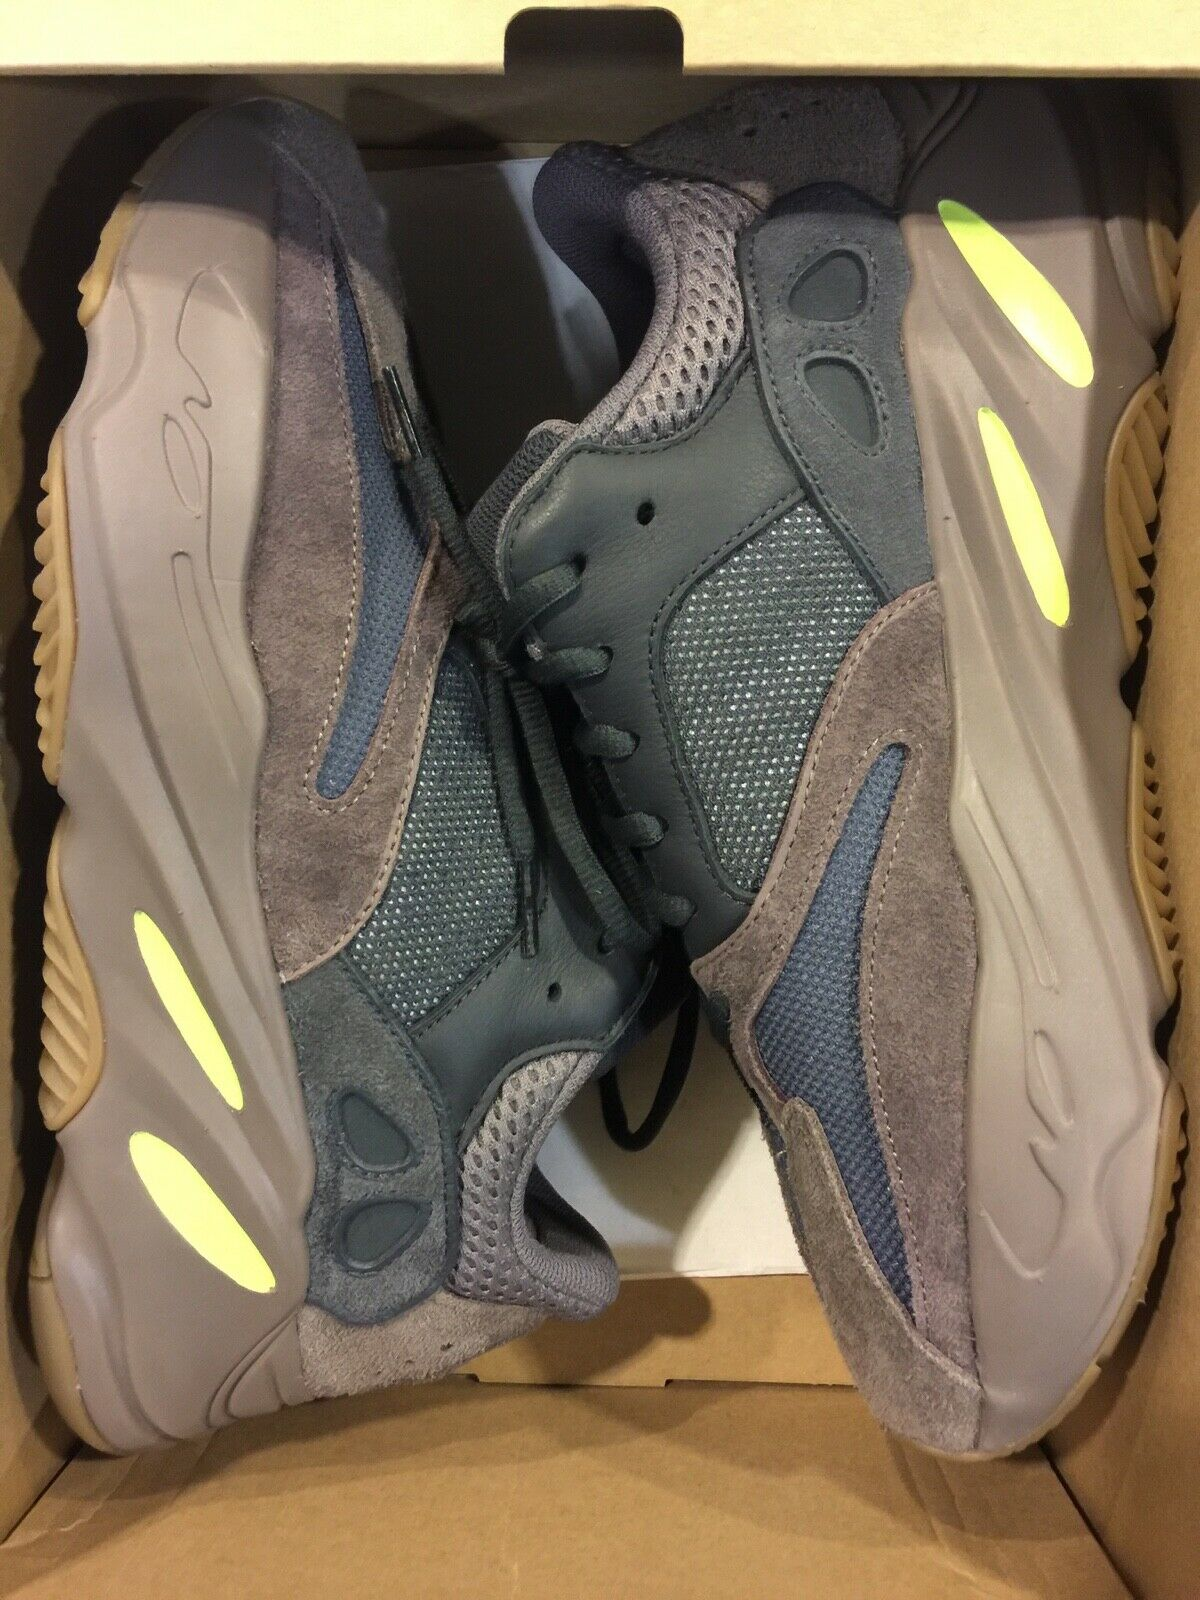 Adidas Yeezy Boost Mauve 700  size 9.5. VNDS and Authentic.